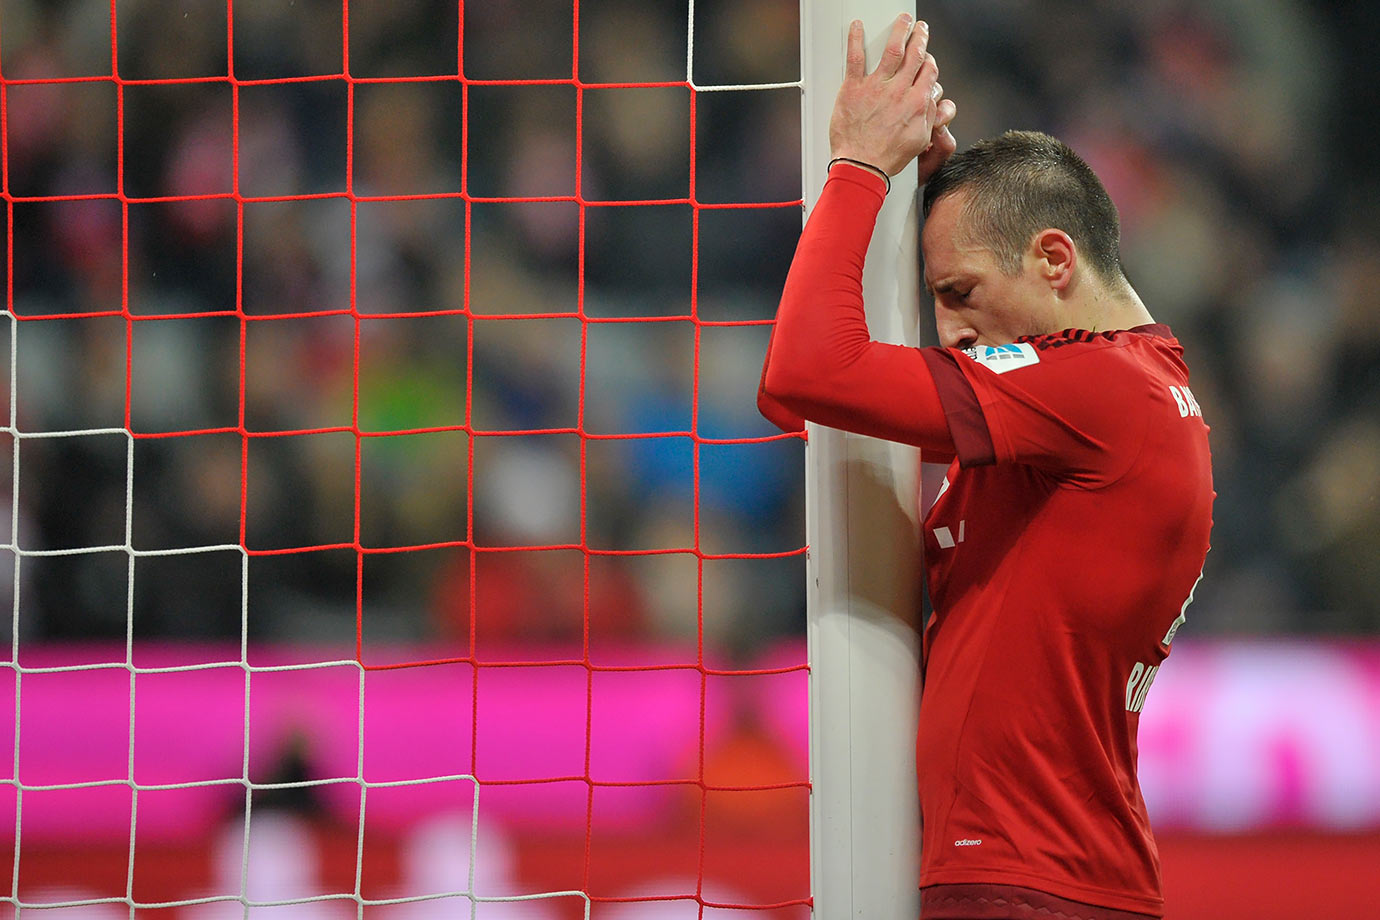 Bayern Muenchen midfielder Franck Ribery reacts after a missed chance during their Bundesliga match against Werder Bremen in Munich, Germany.